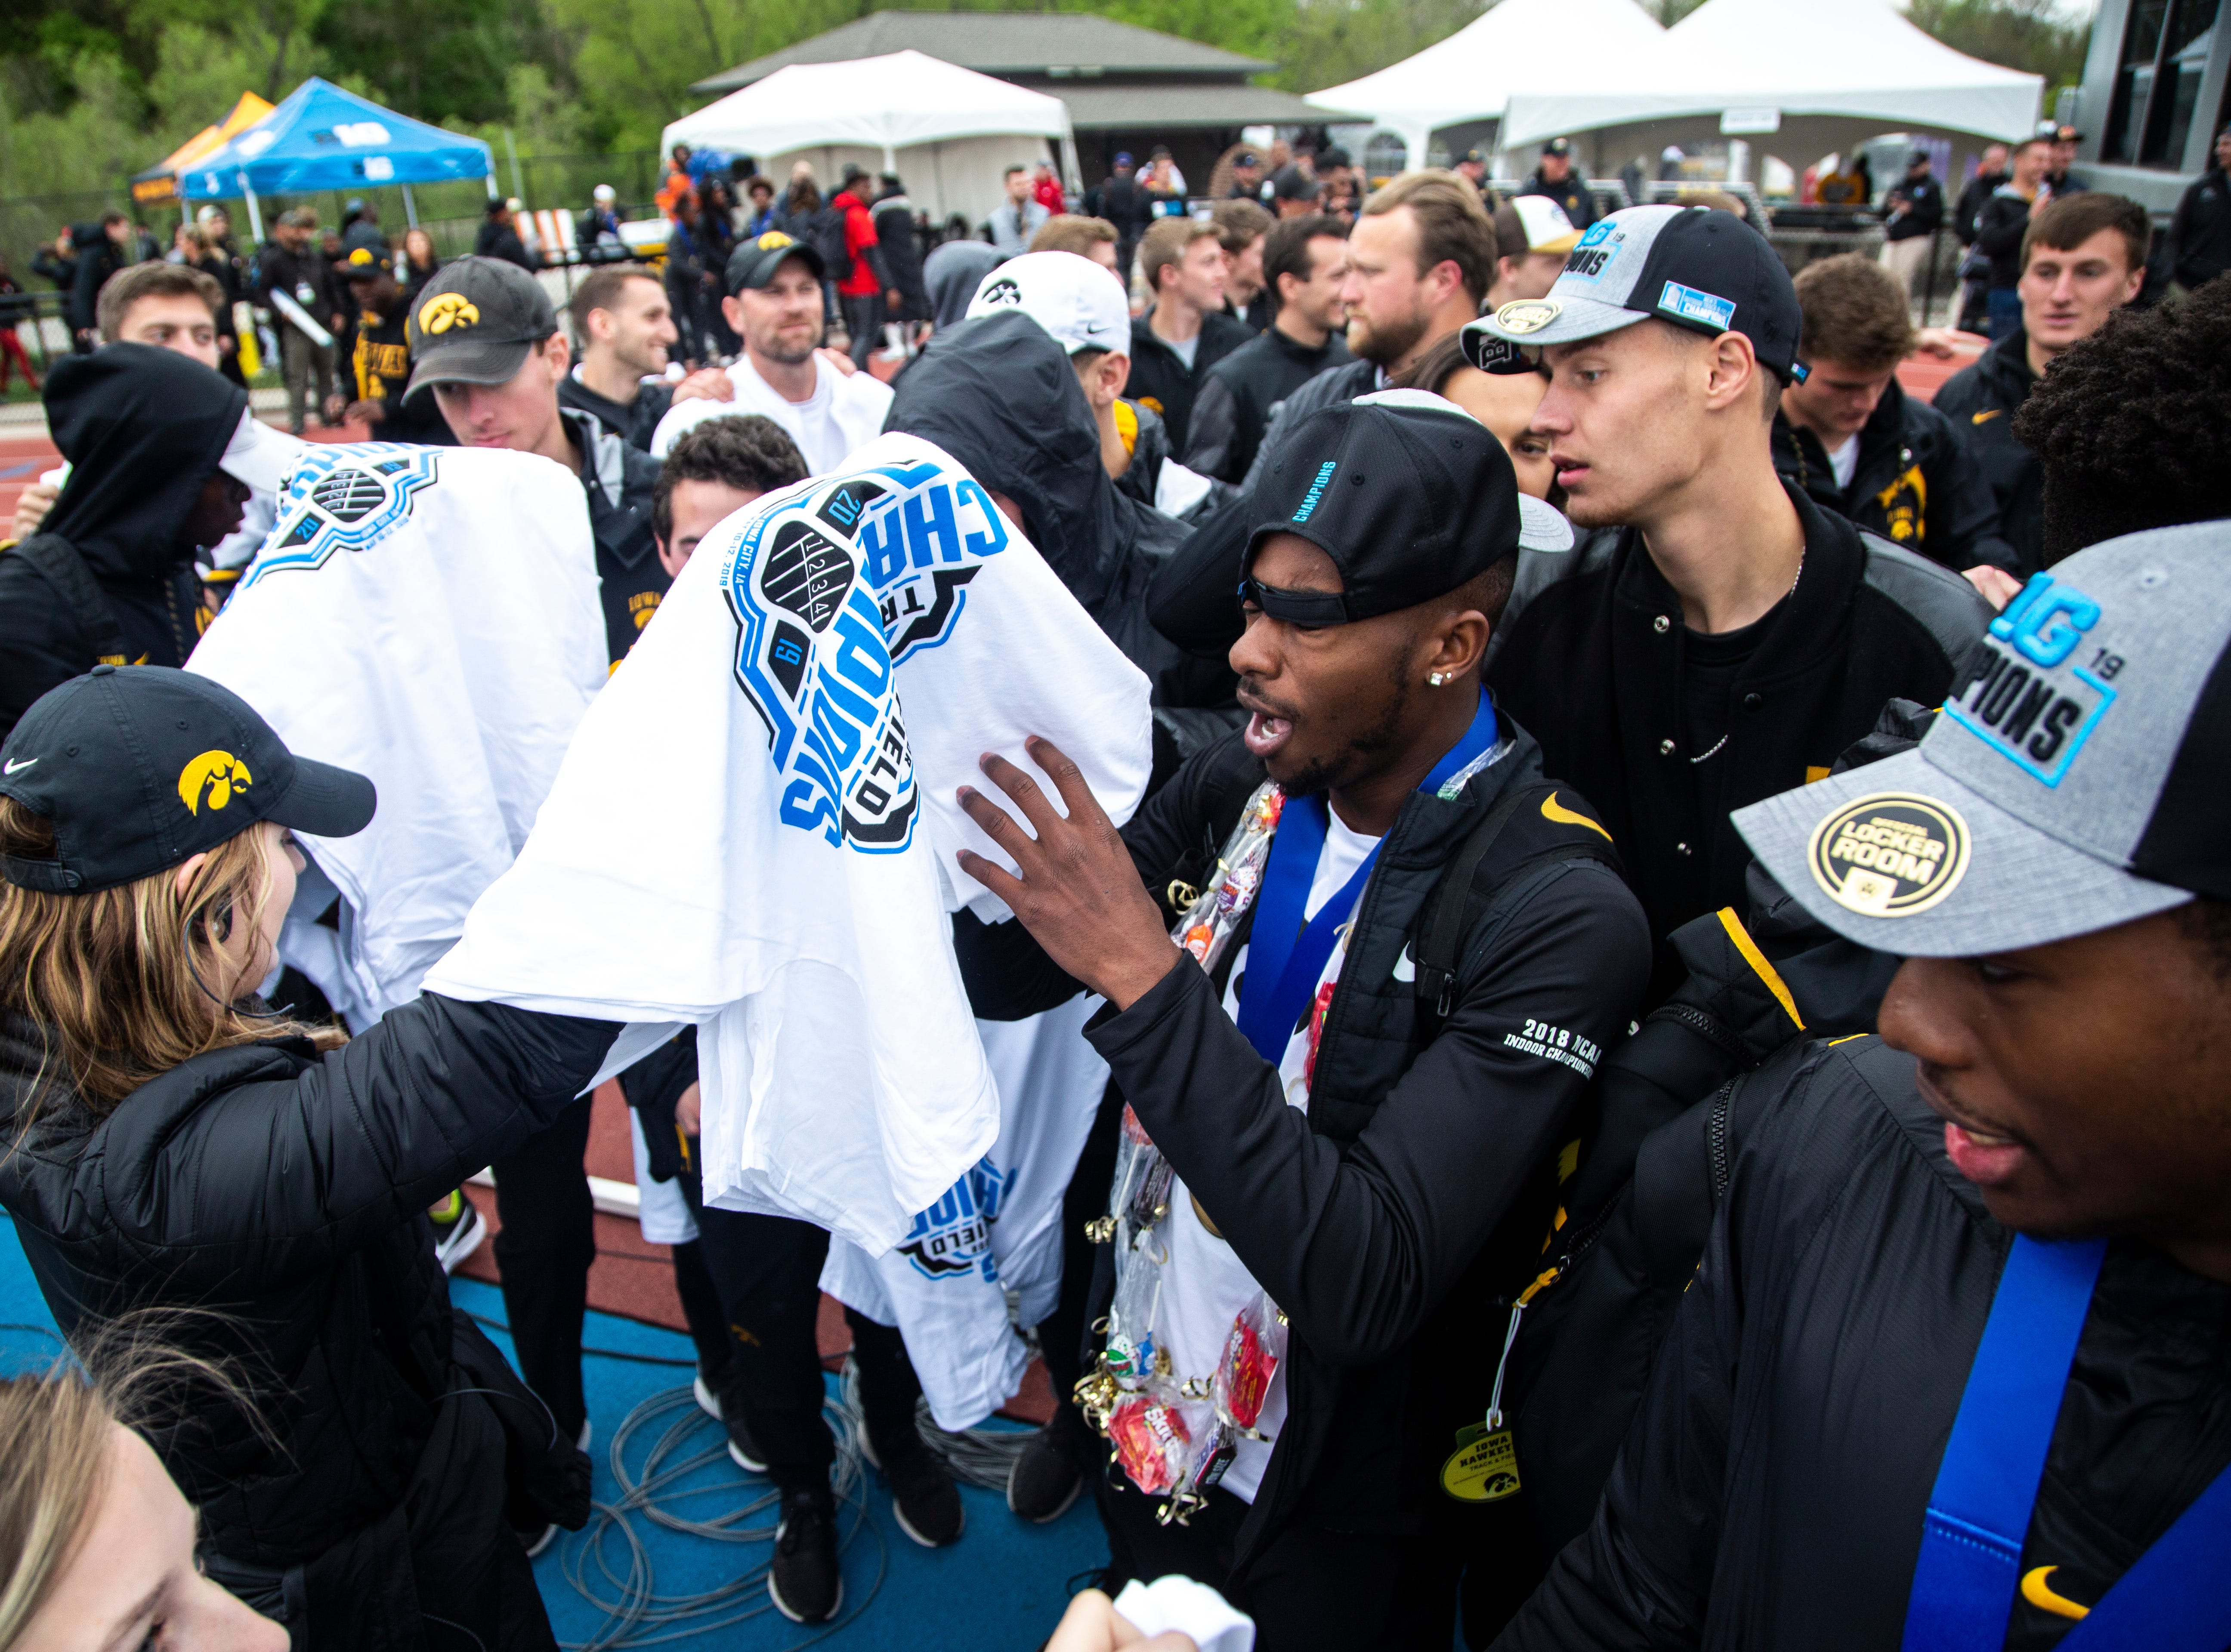 Iowa Hawkeyes men celebrate with Big Ten Championship t-shirts during the final day of Big Ten track and field outdoor championships, Sunday, May 12, 2019, at Francis X. Cretzmeyer Track on the University of Iowa campus in Iowa City, Iowa.